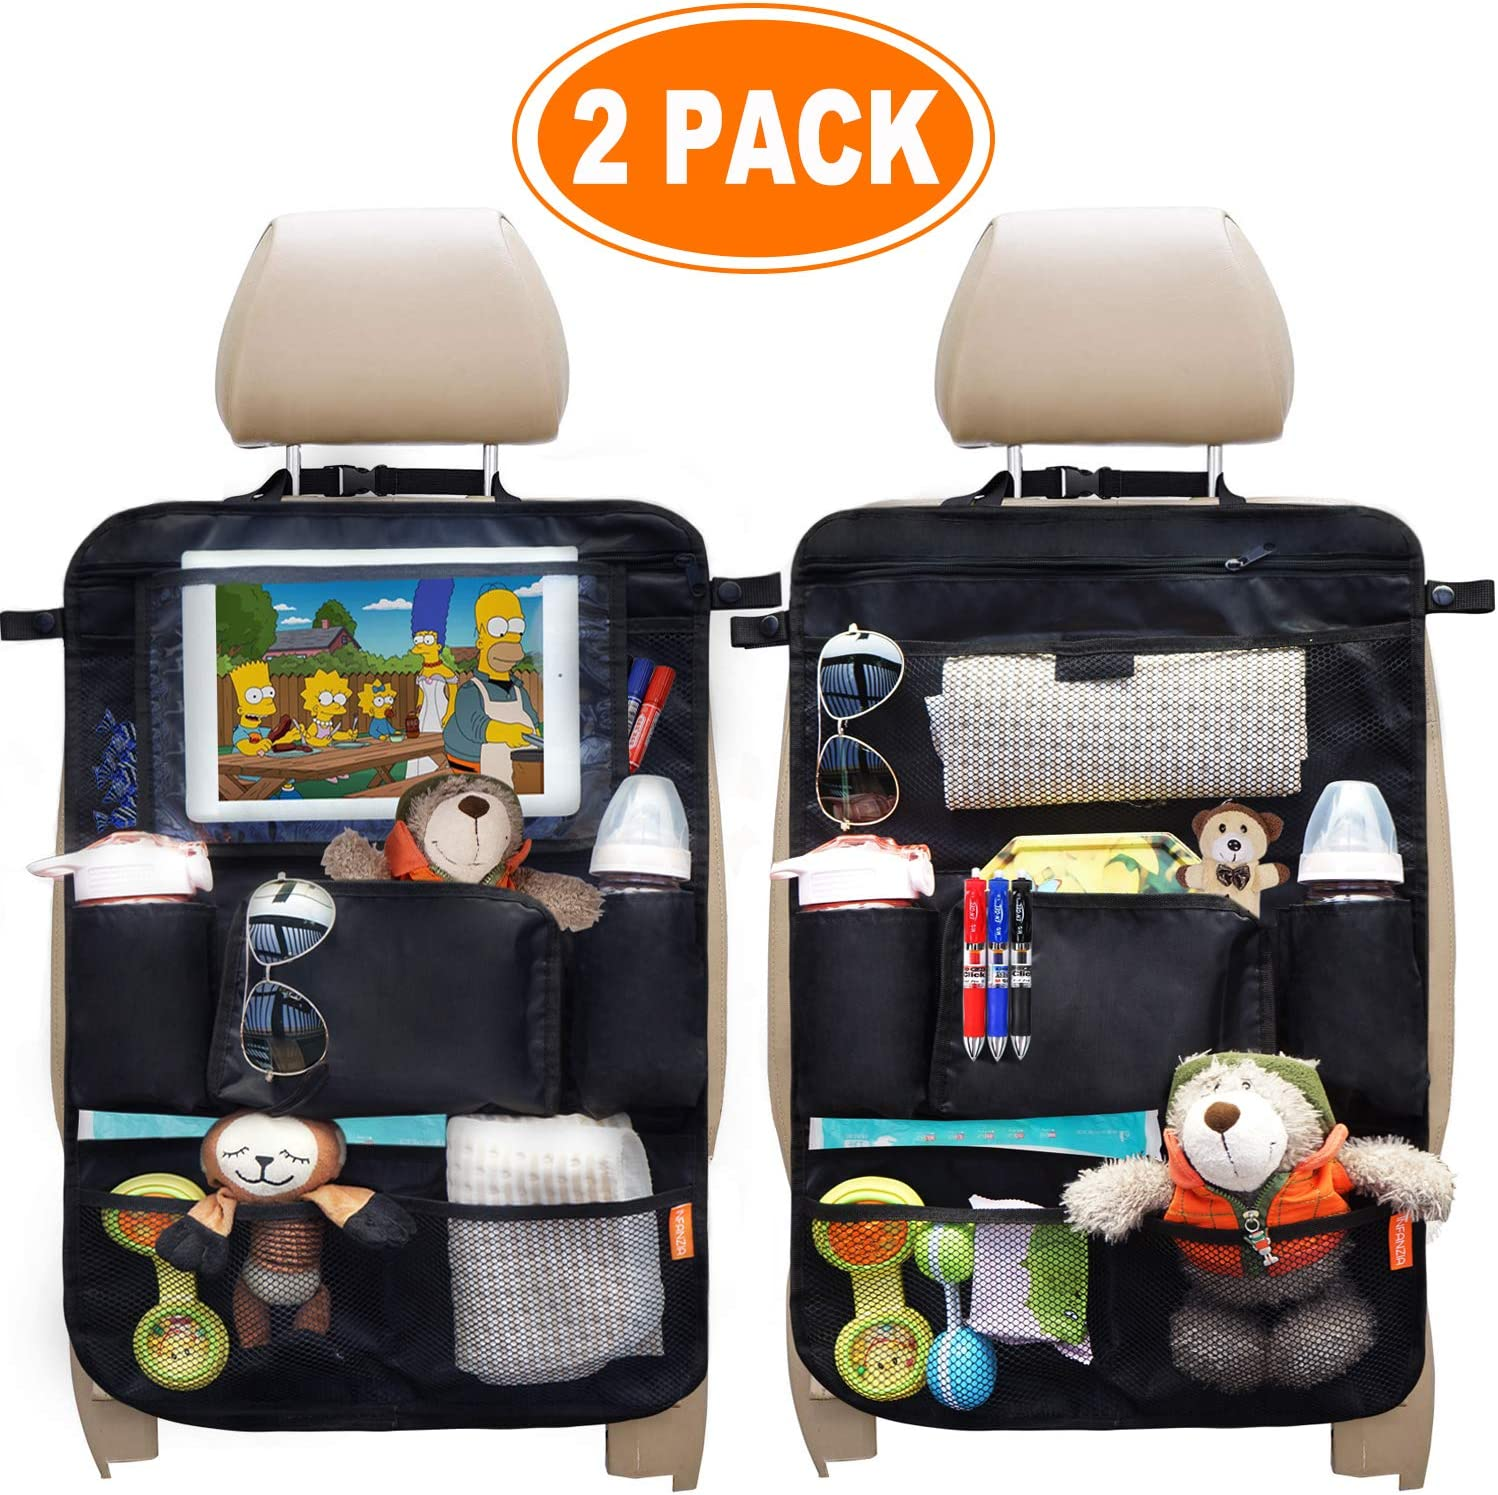 9 Storage Pockets Seat Back Protectors Kick Mats for Kids Toy Bottle Drink Vehicles Travel Accessories INFANZIA Car Backseat Organizer 2 Pack with Clear 10.5 Tablet Holder